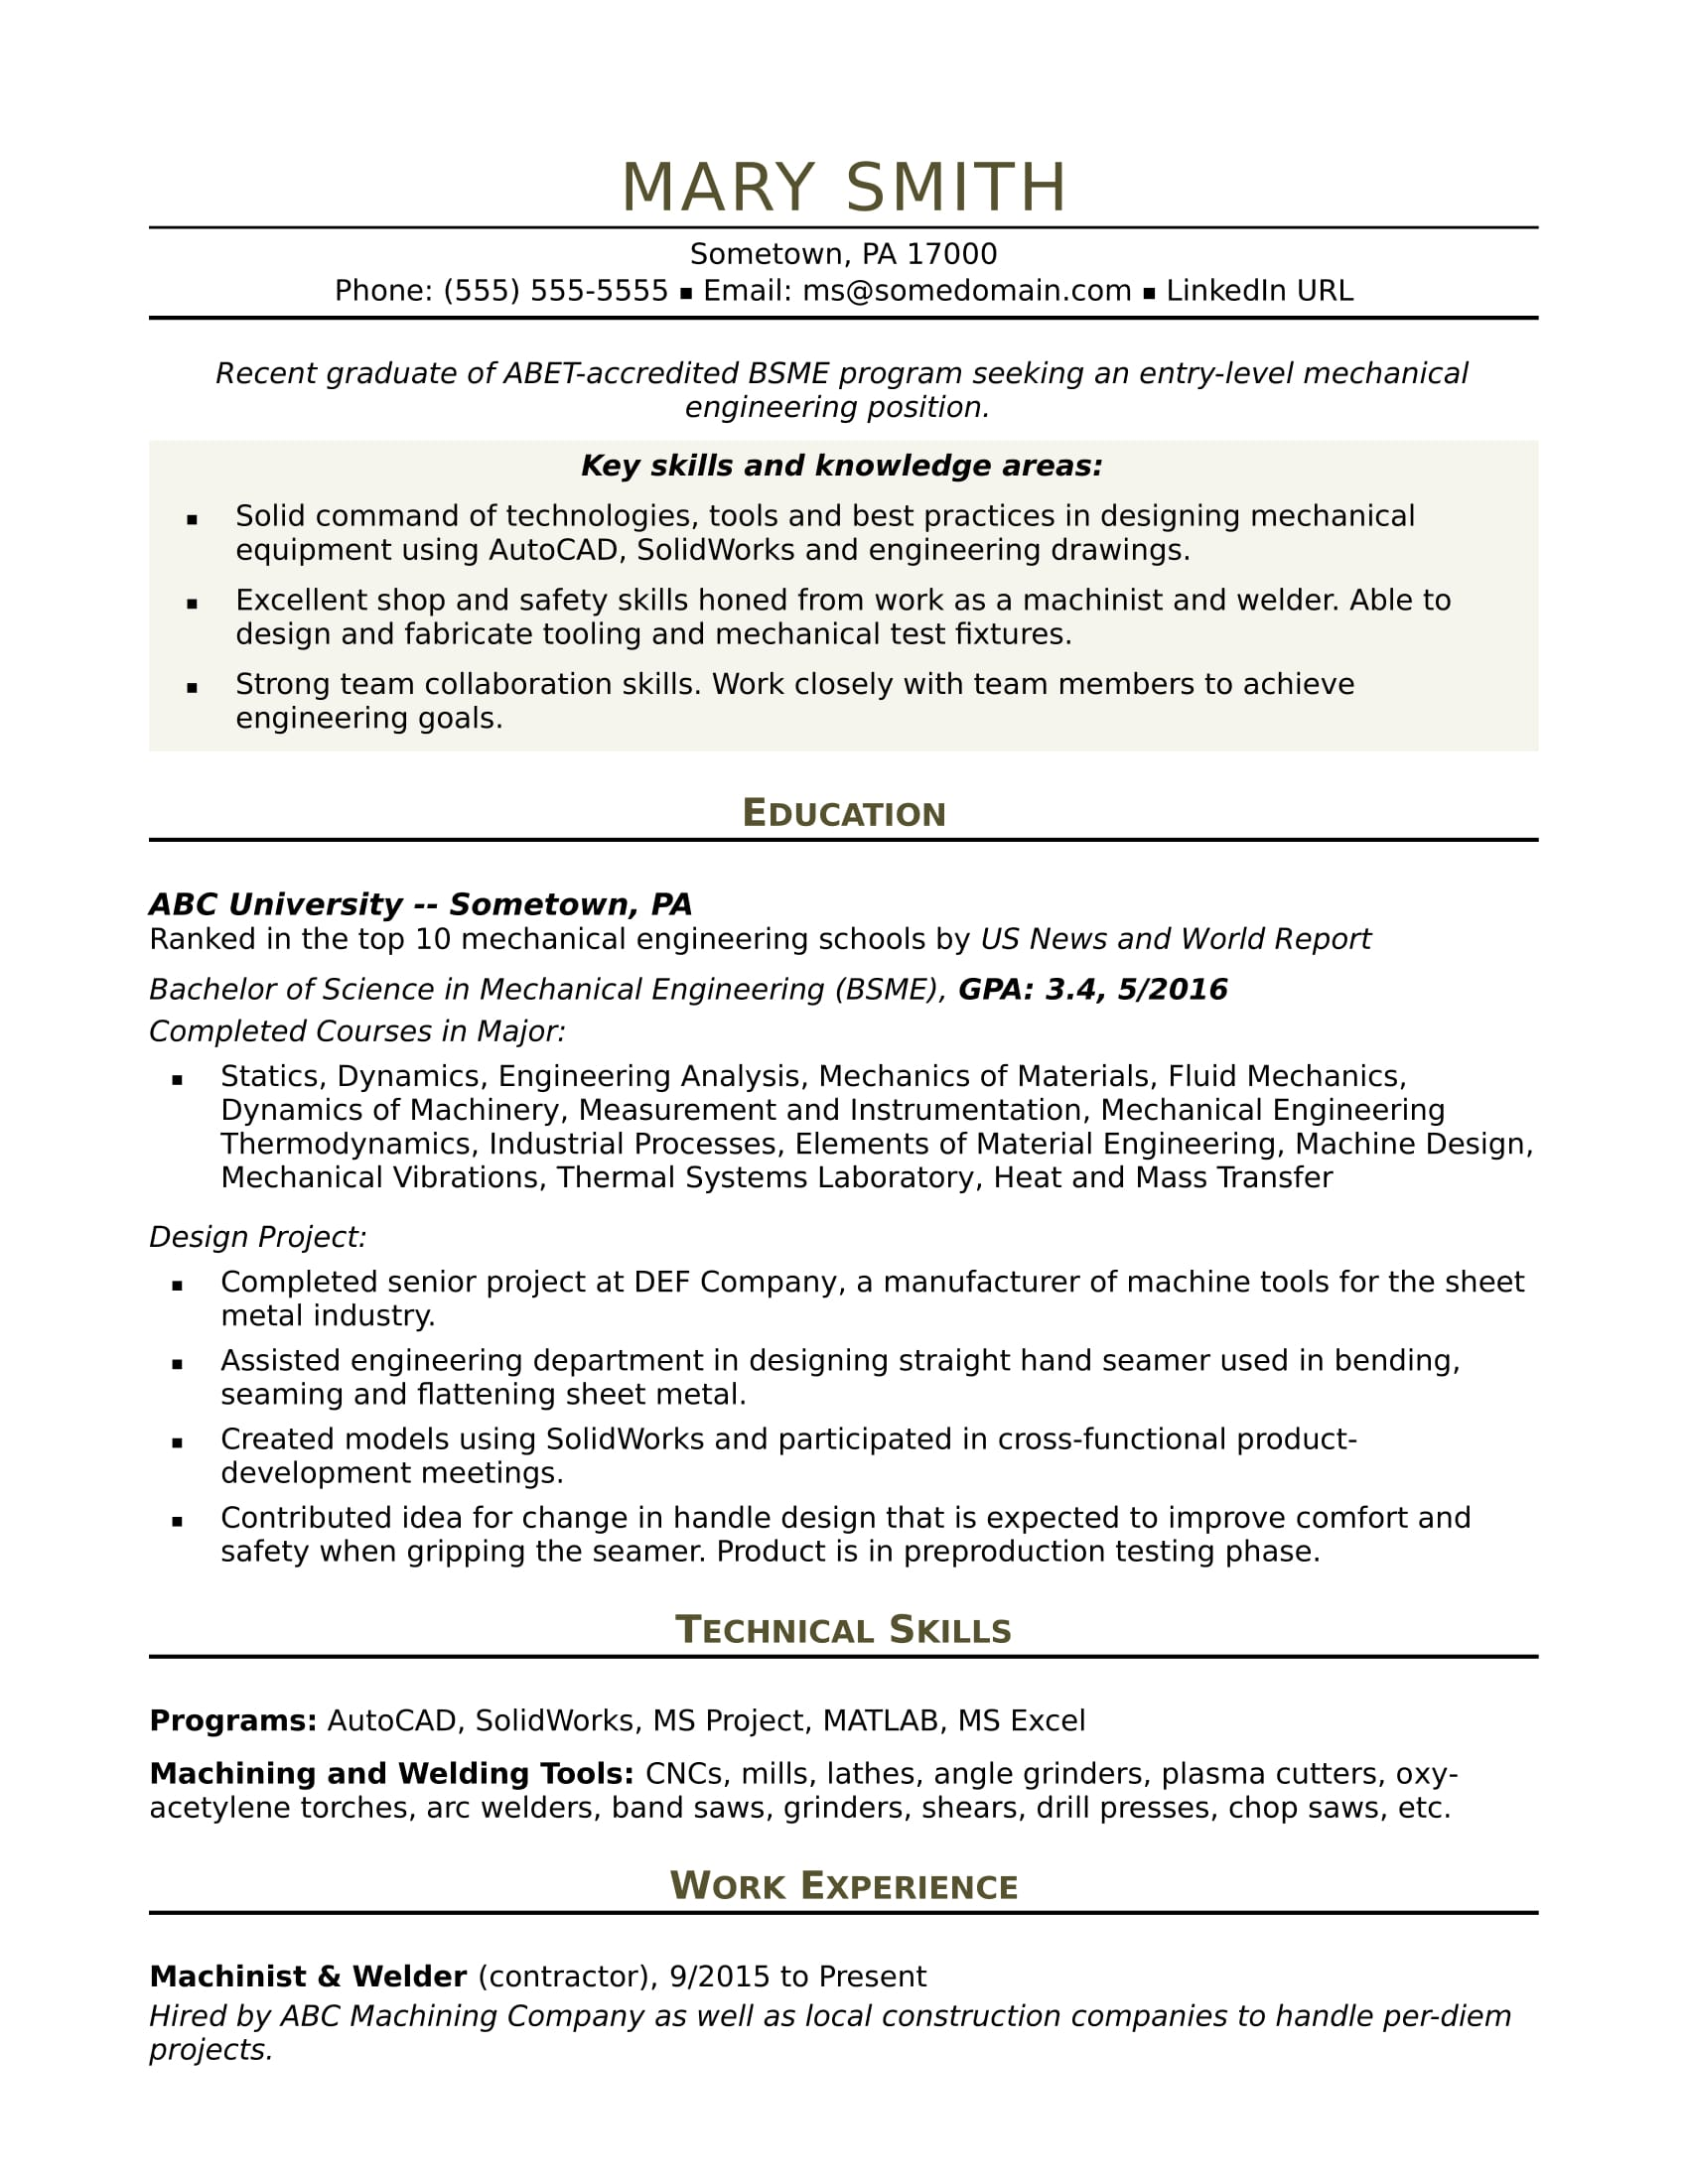 sample resume for an entry level mechanical engineer - Engineer Resume Template